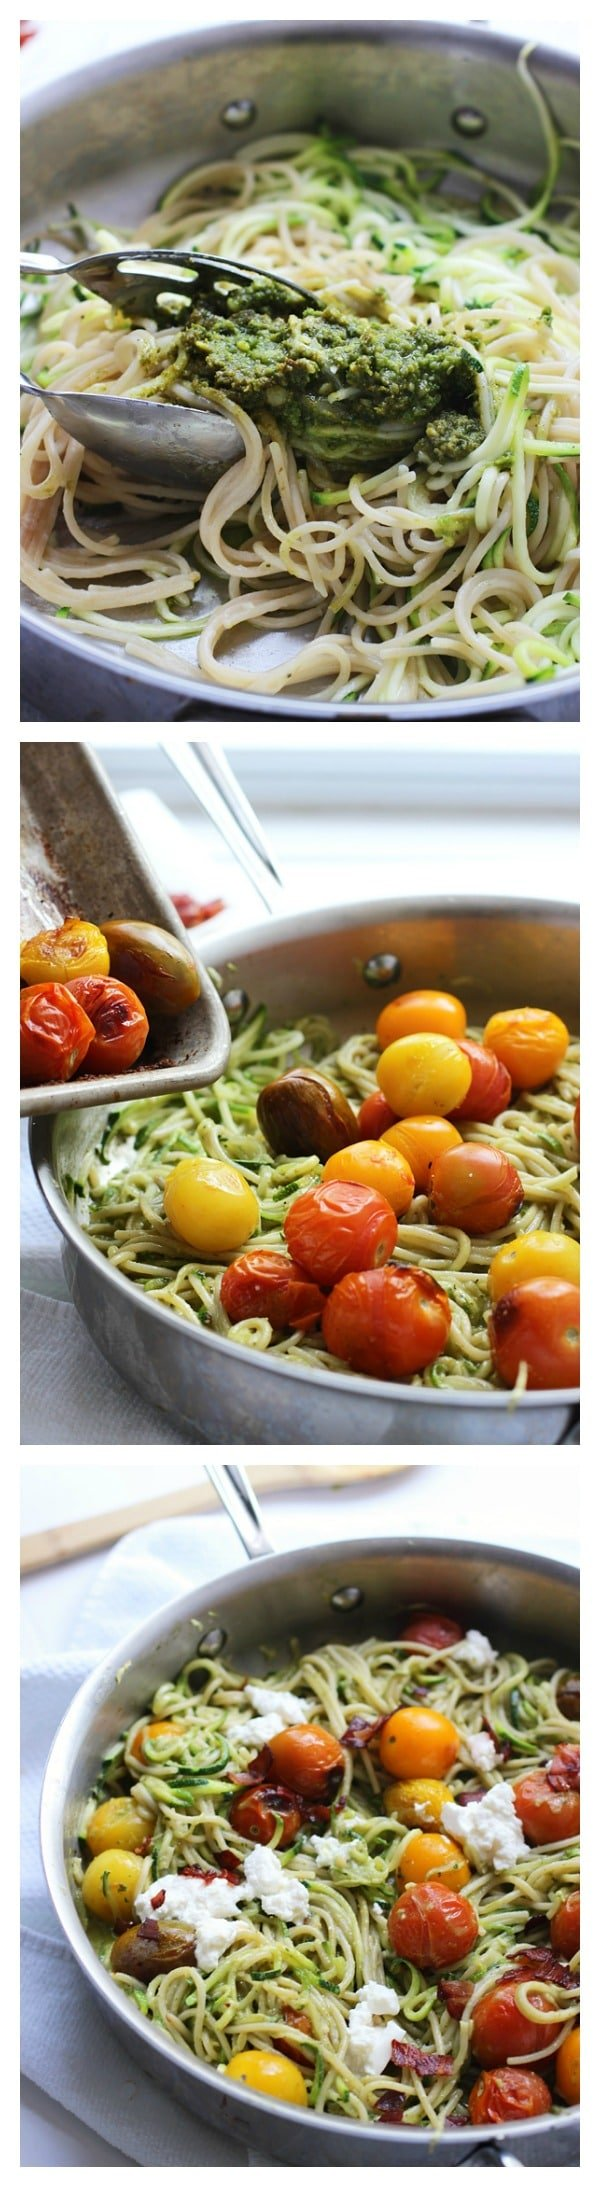 Whole-Wheat-and-Zucchini-Spaghetti-with-Basil-Almond-Pesto-Blistered-Tomatoes-and-Crispy-Proscuitto